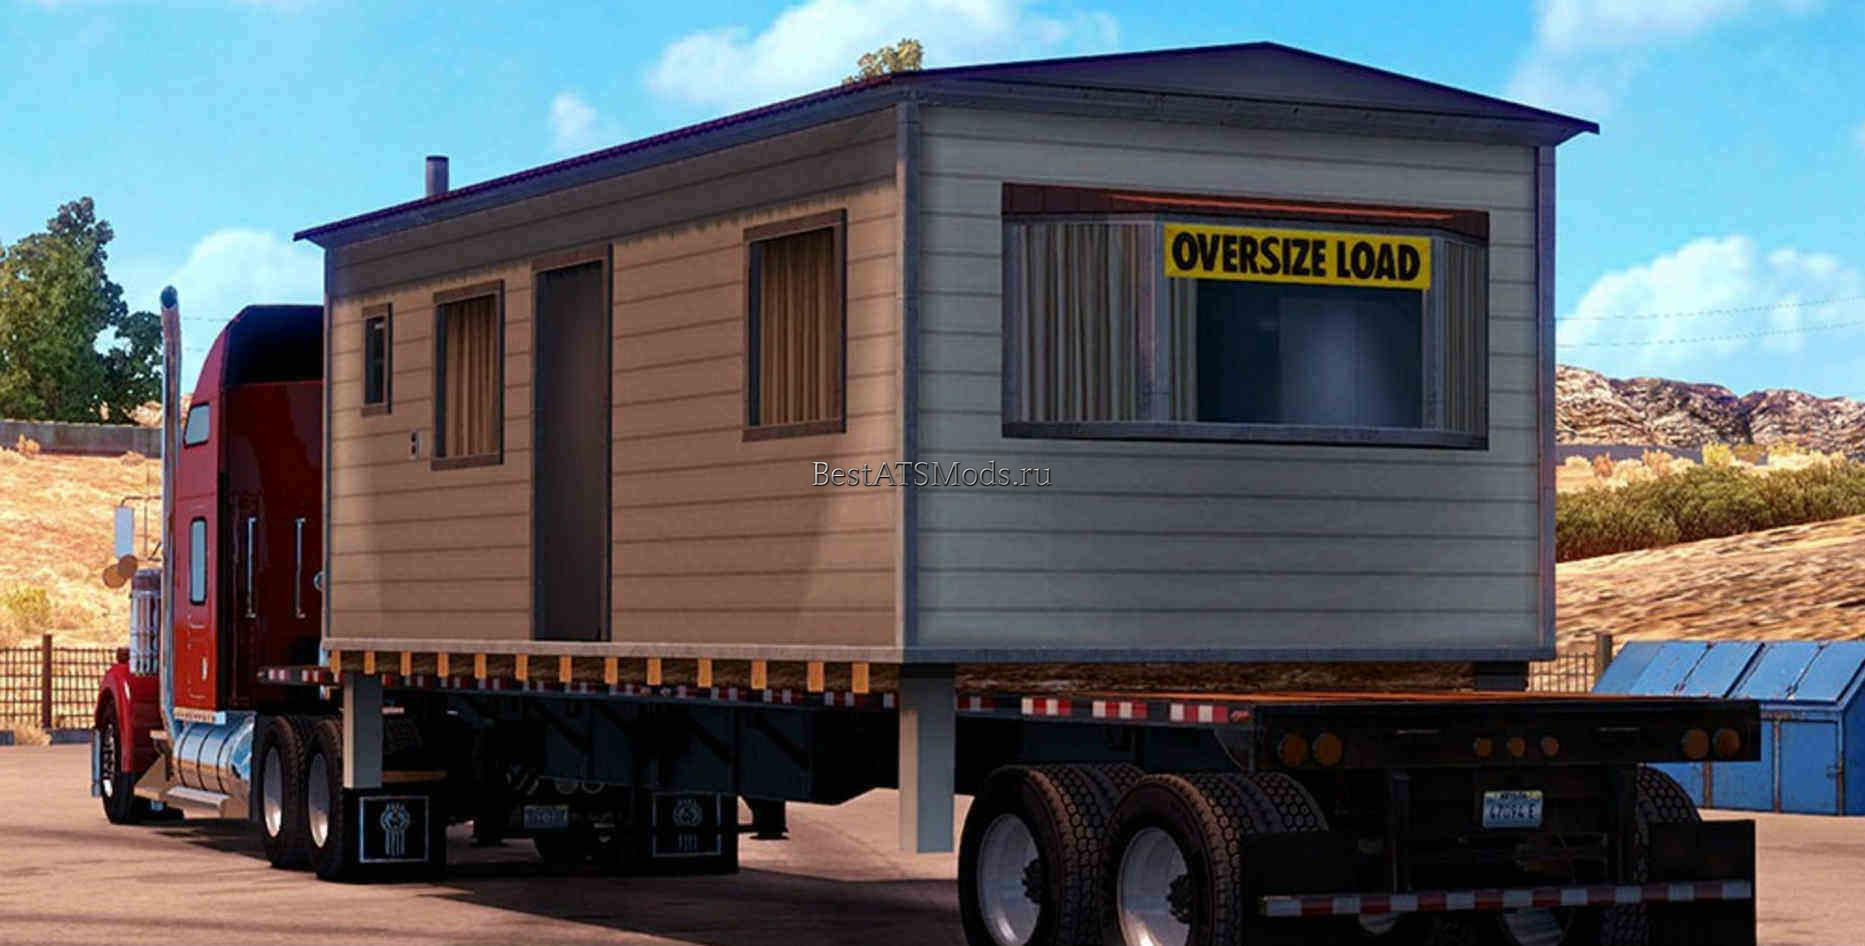 rsz_Мод_прицеп_flatbed_trailer_cargo_pack_v_10_american_truck_simulator